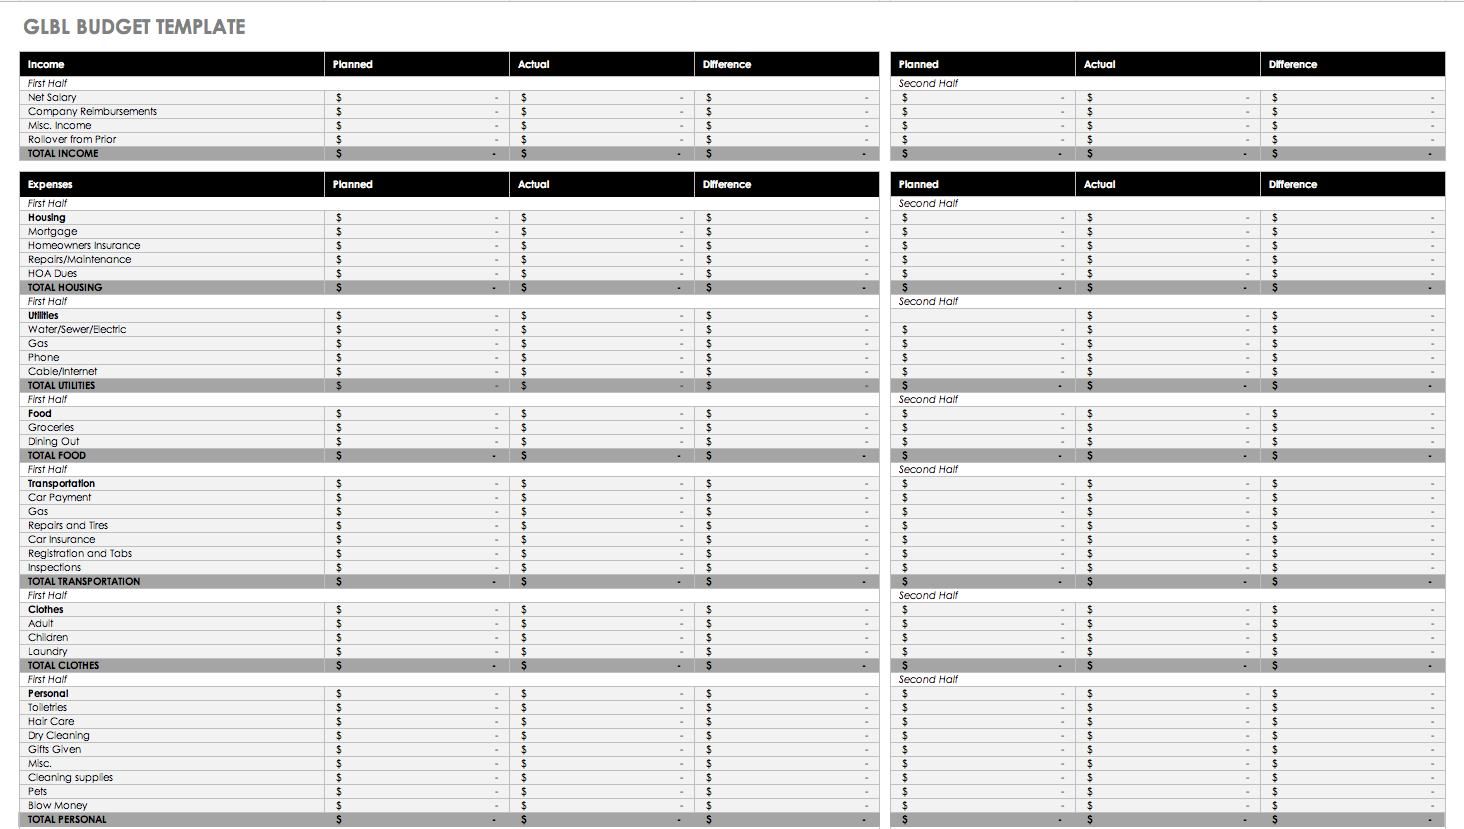 Detailed Budget Spreadsheet For Free Budget Templates In Excel For Any Use